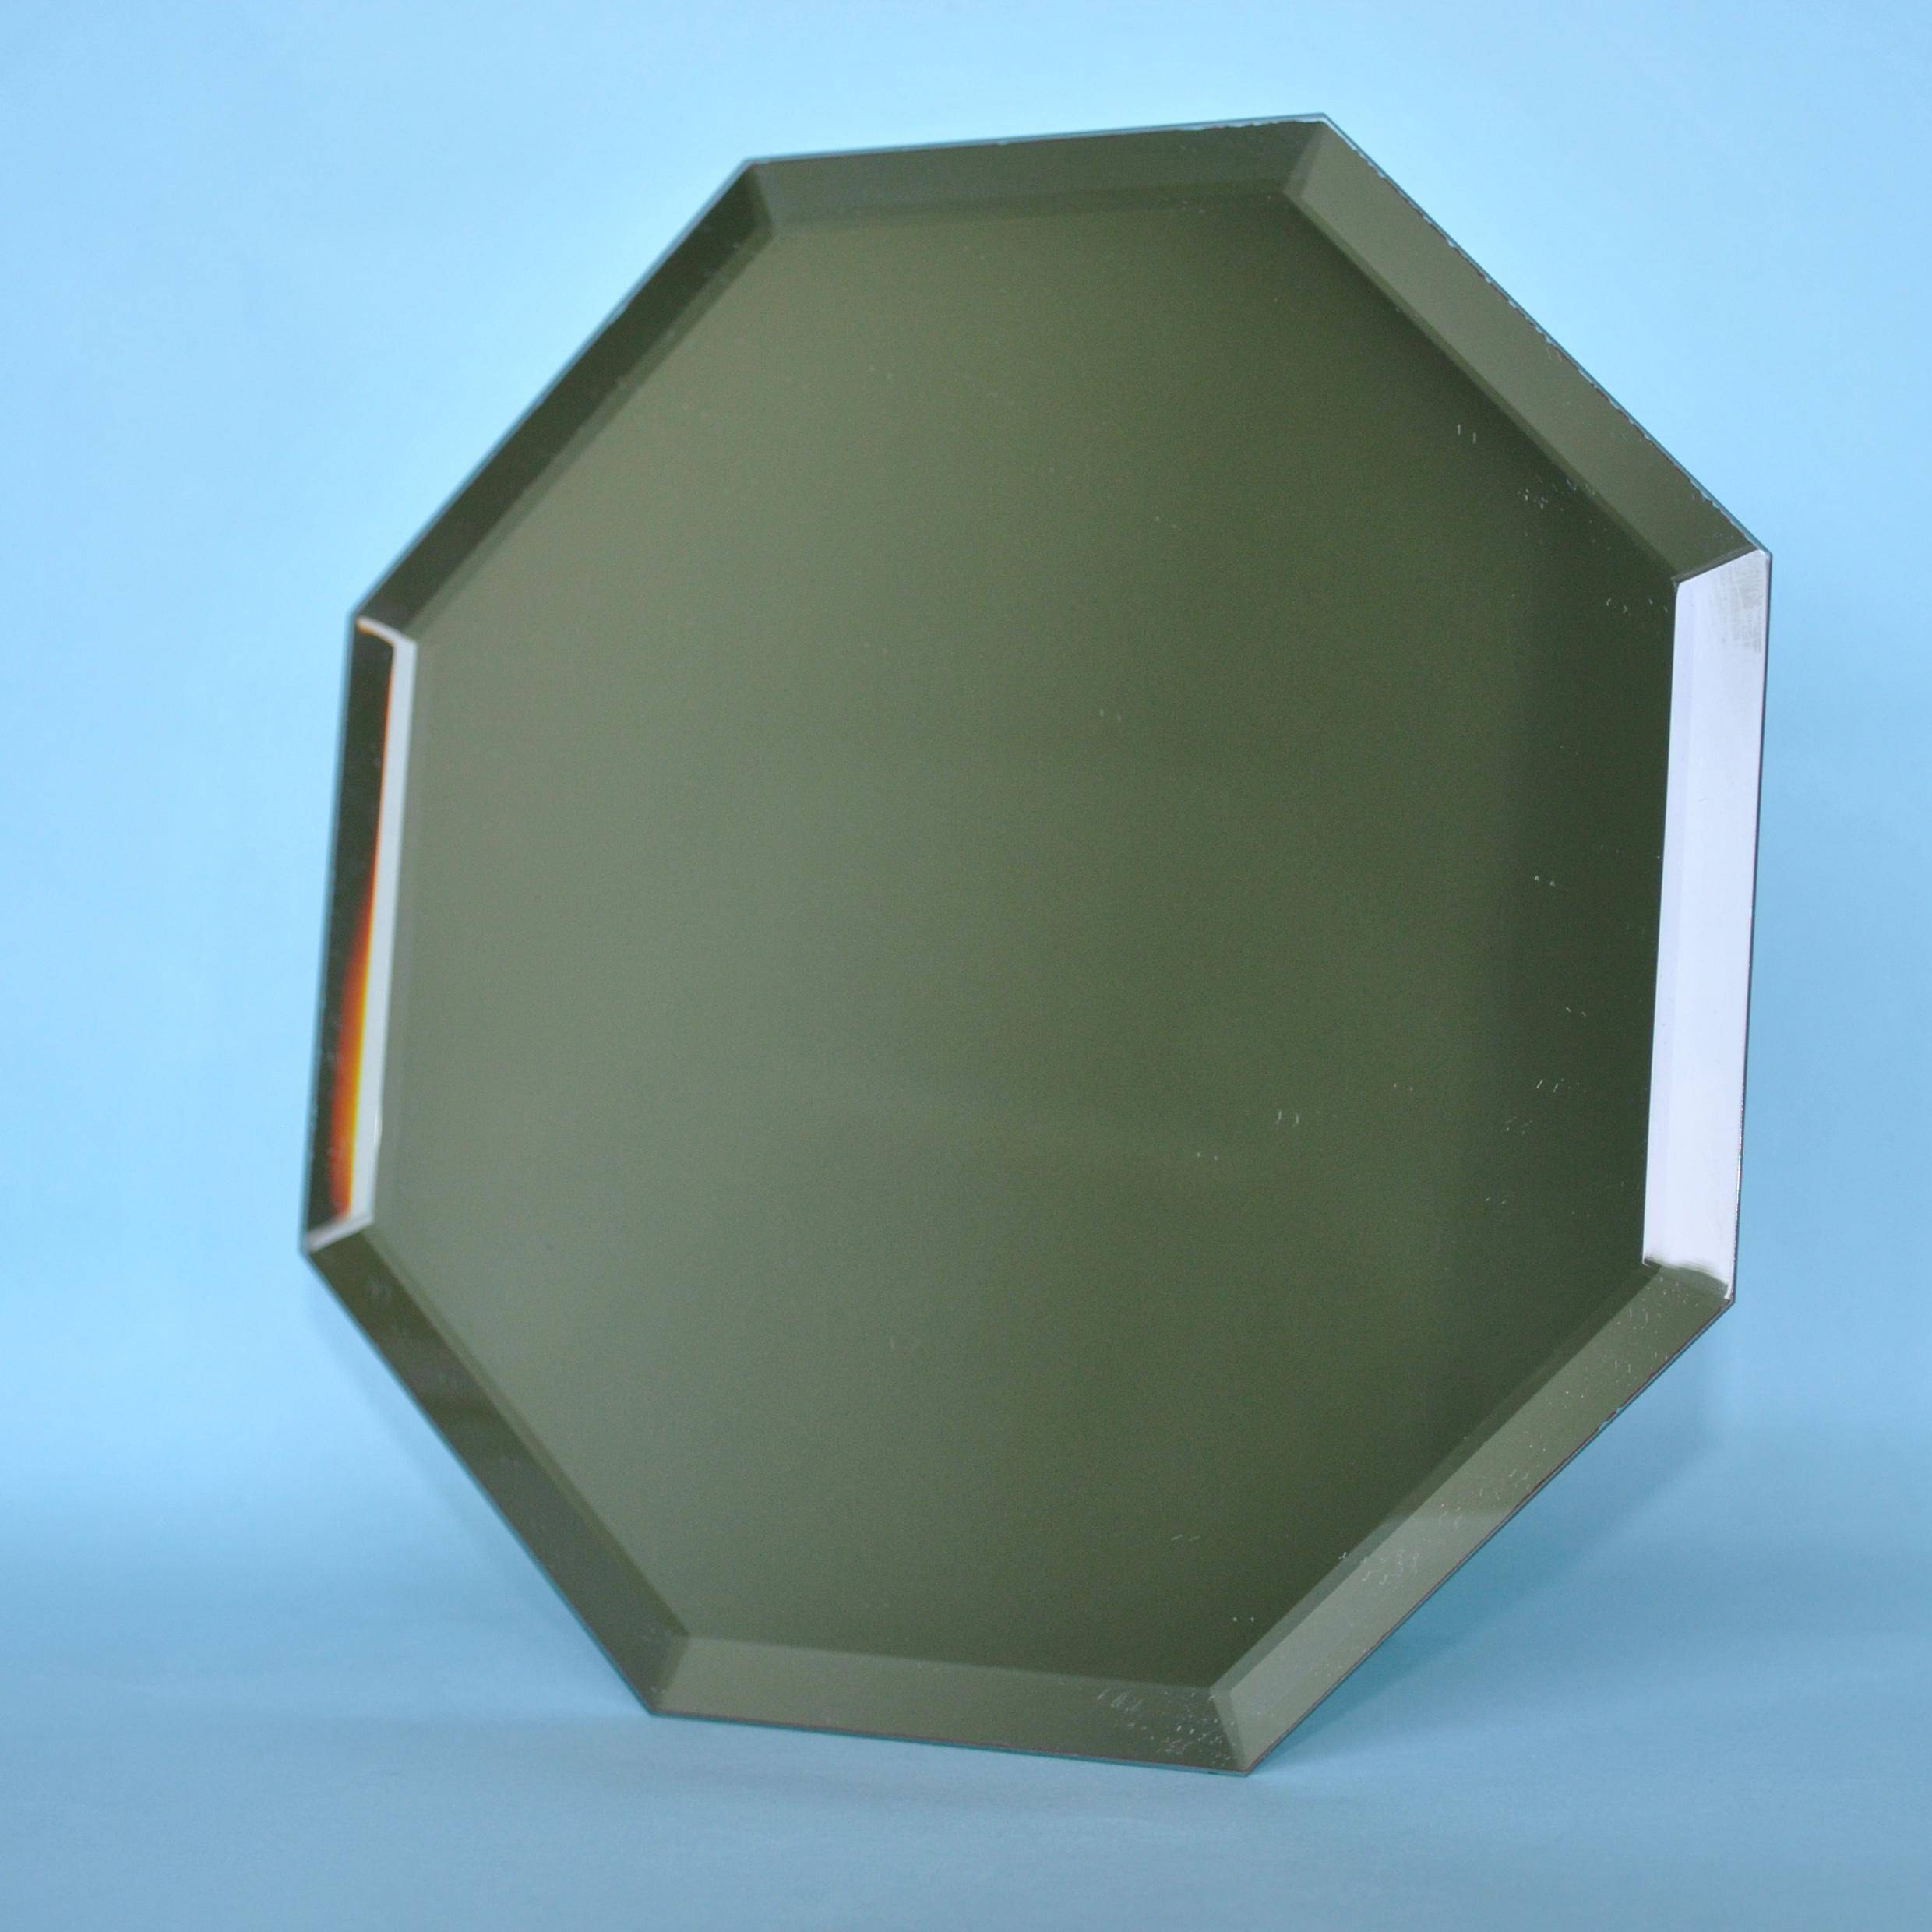 8Mm Octagon Bevel Edge Silver Mirror, China 8Mm Octagon Bevel Edge for Bevel Edged Mirrors (Image 3 of 15)